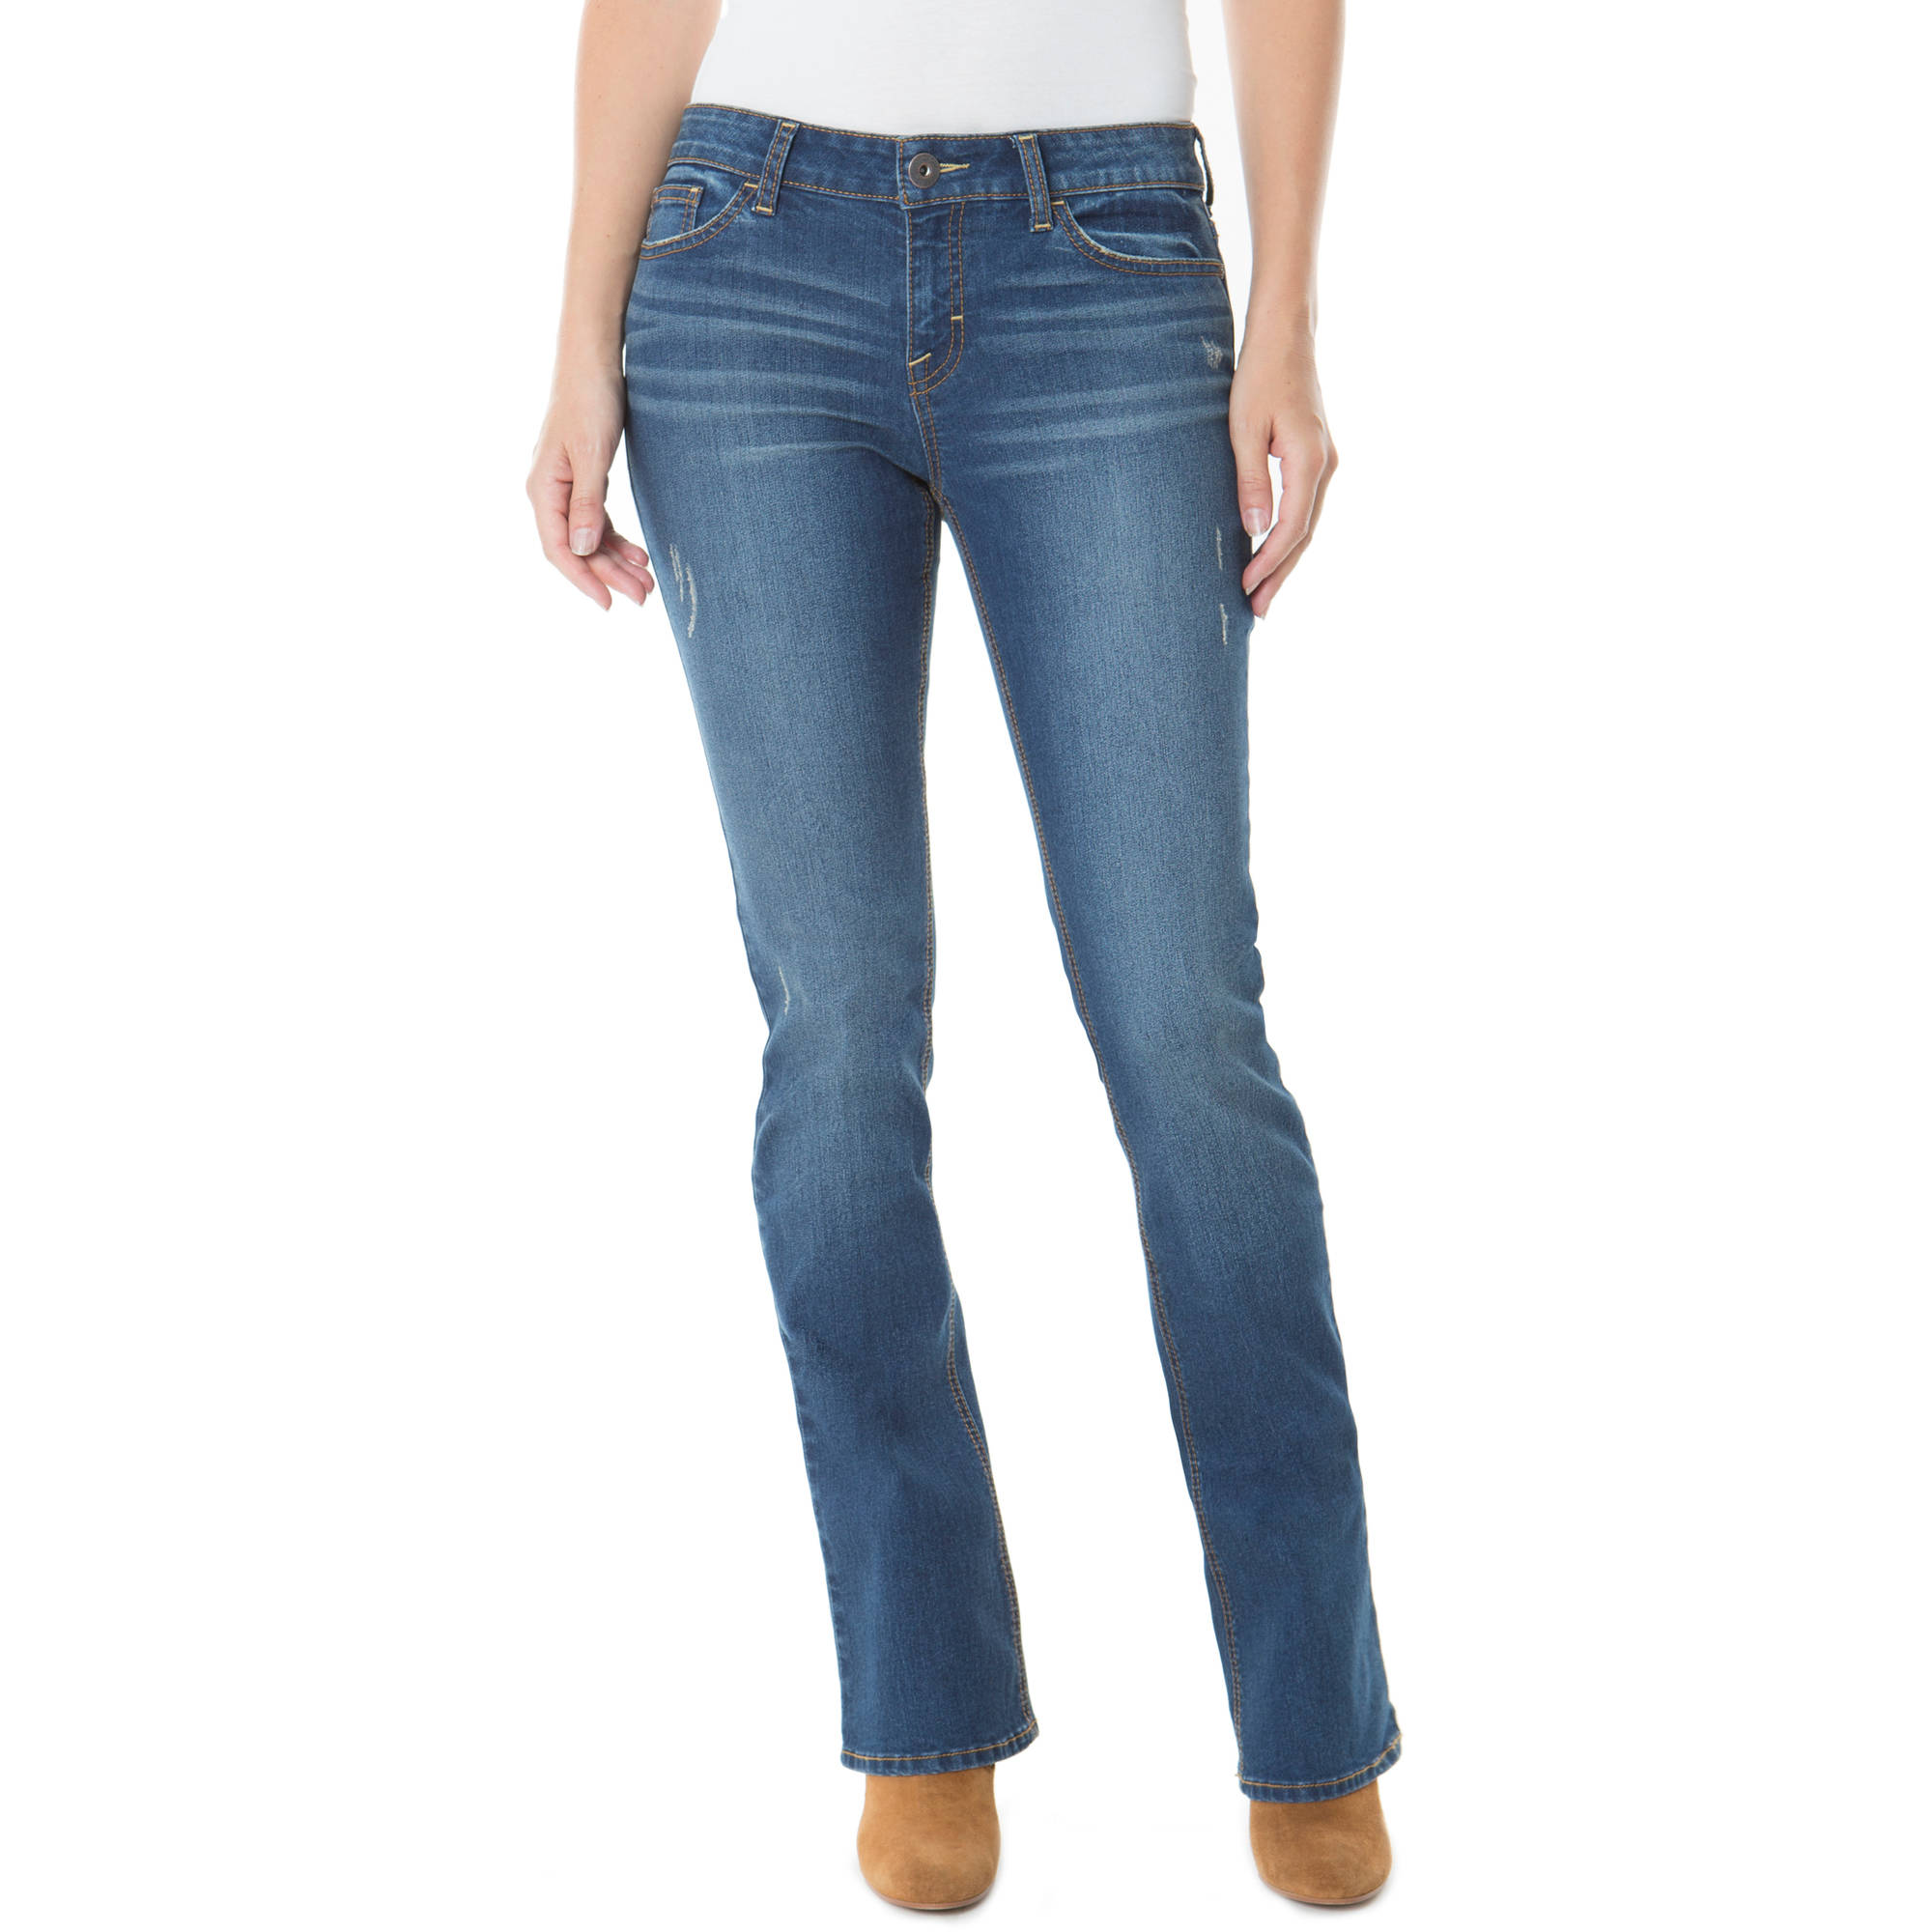 Jordache Women's Mid-Rise Skinny Bootcut Jean, Available in Regular and Petite